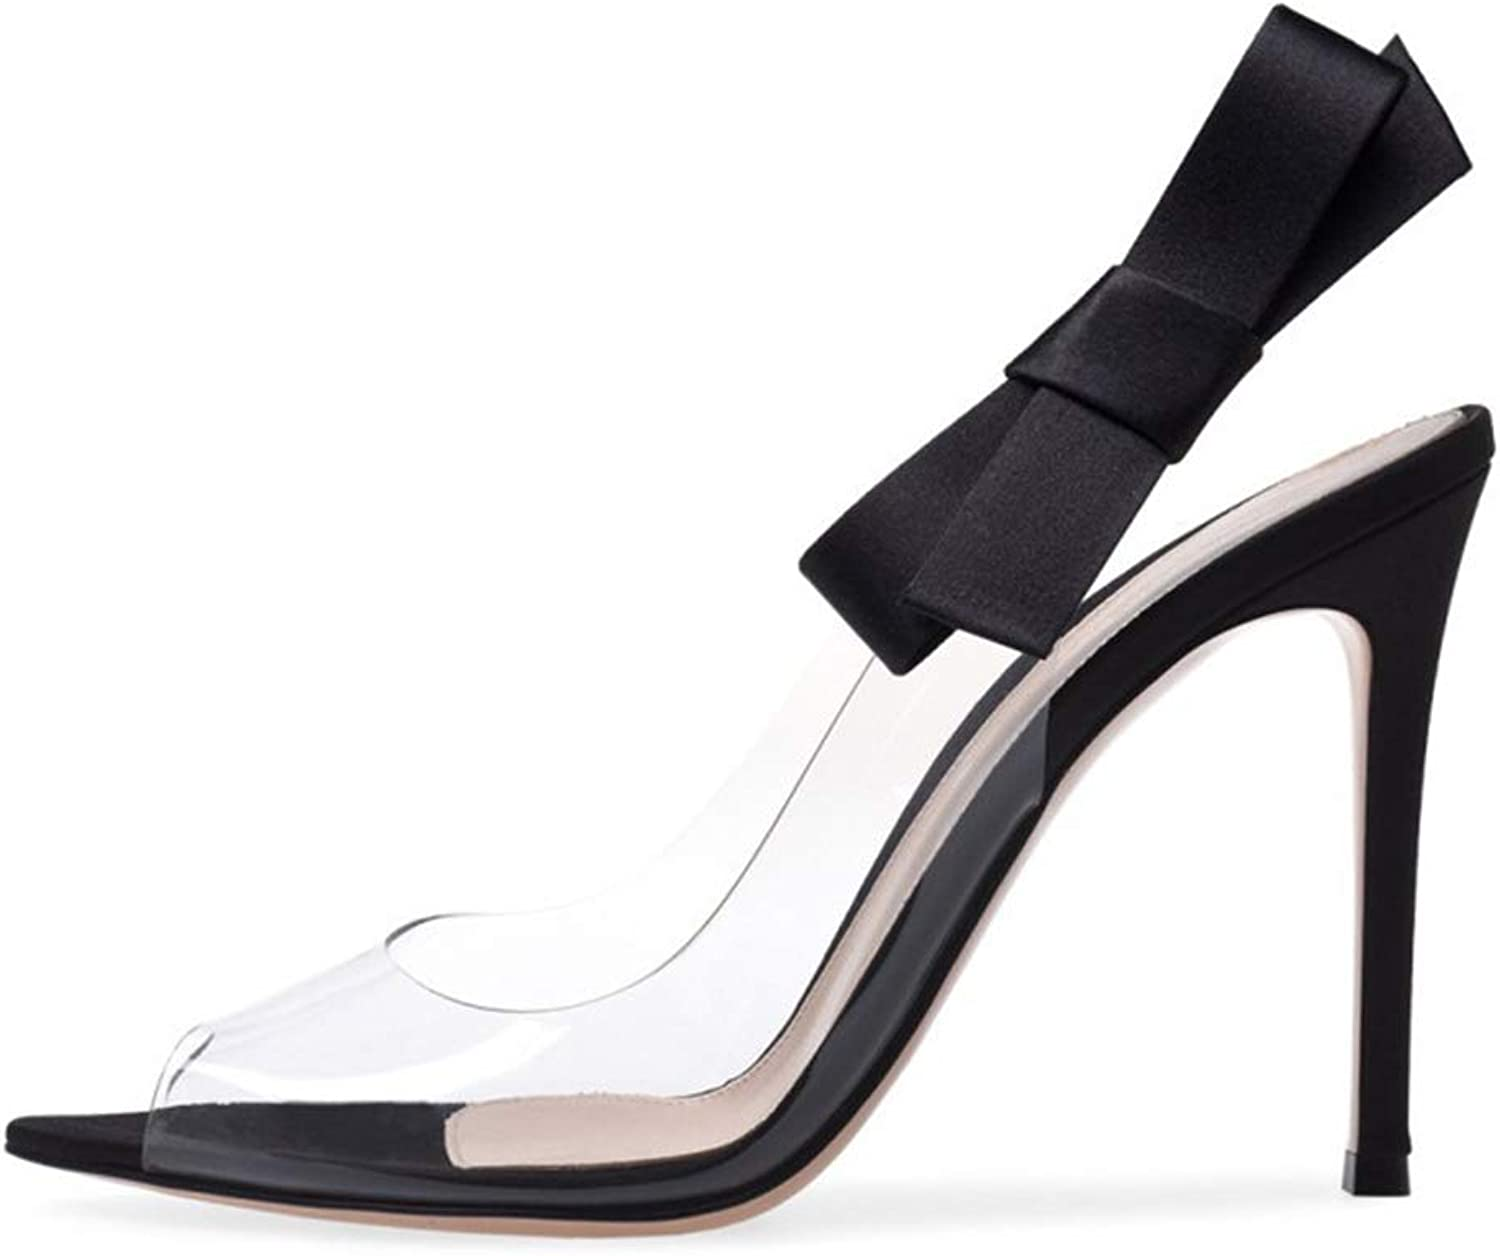 Womens high Heel shoes Microfiber Open Toe Stiletto Heels Shallow Mouth Bow Decorative Transparent Sandals Summer